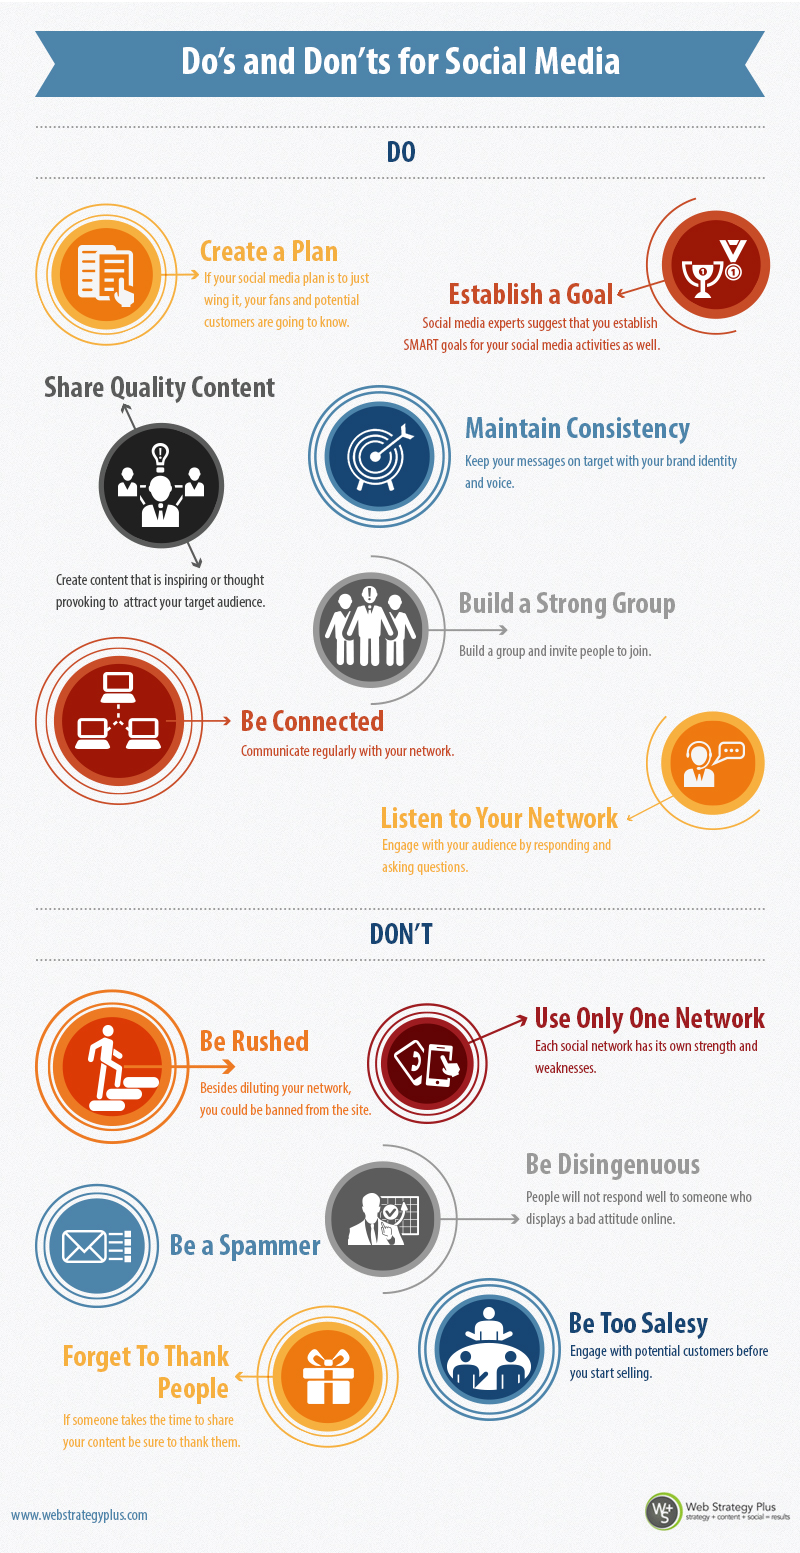 Top Do's and Don'ts for Social Media – Infographic